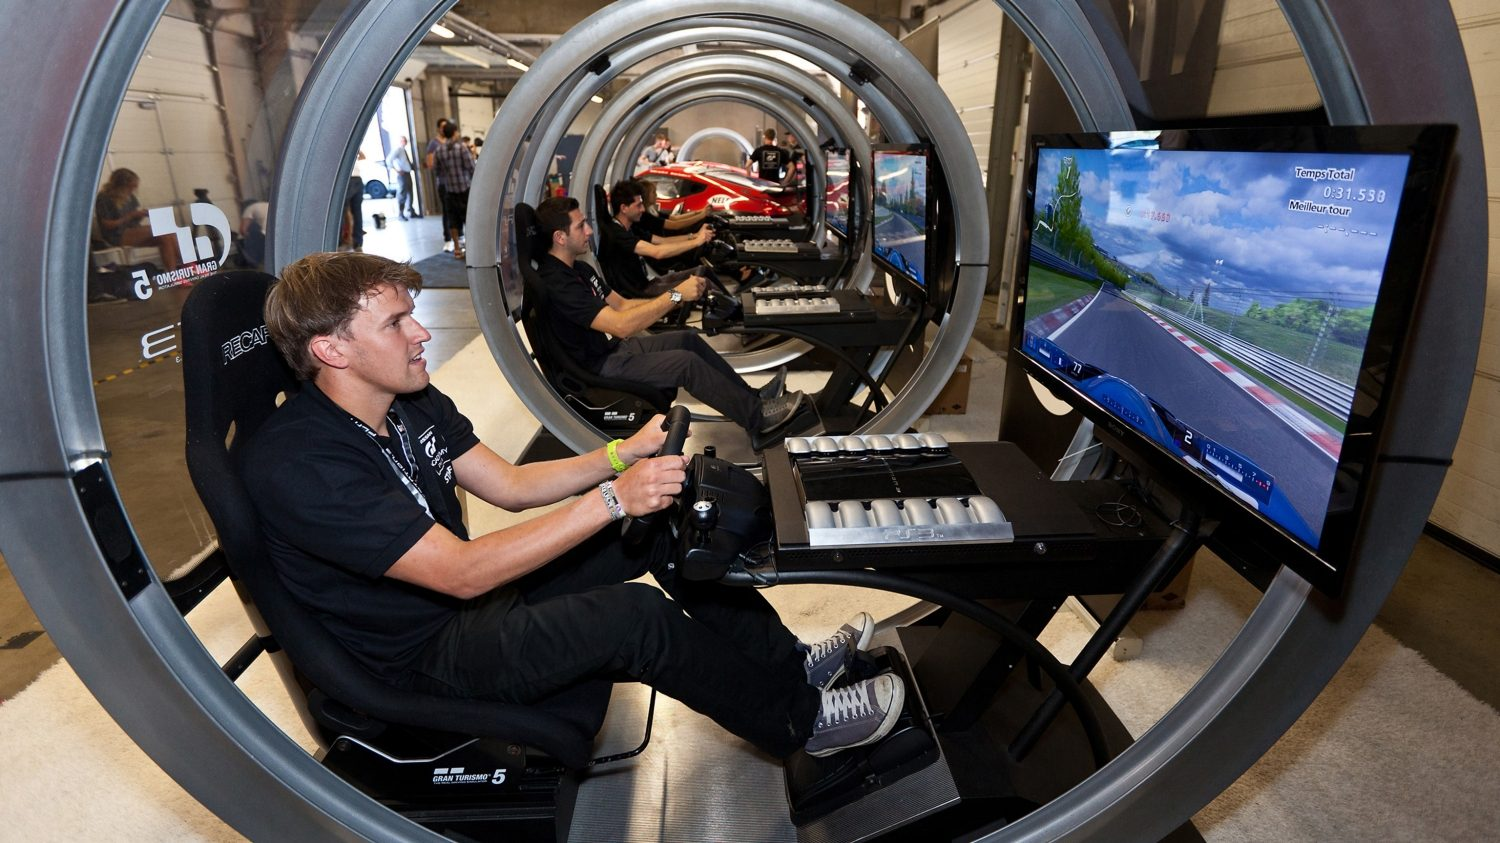 GT Academy gallery. Driver in simulator.